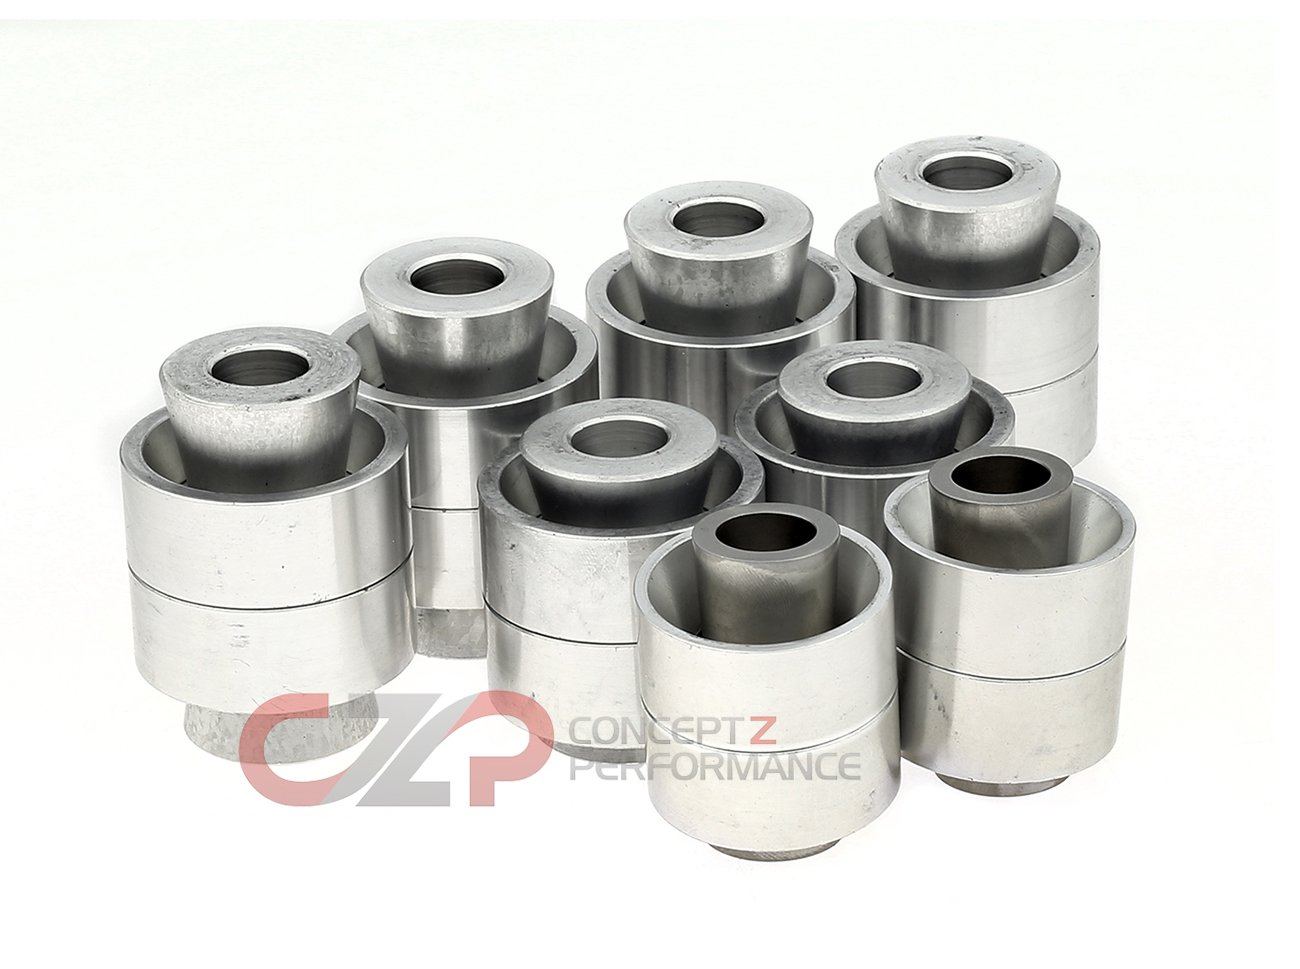 SPL RKB Z34 FKS Rear Knuckle Monoball Bushing Set - Nissan 370Z Z34 09+, Infiniti G37 08+/ G35 07-08 Sedan V36 эквалайзер spl passeq